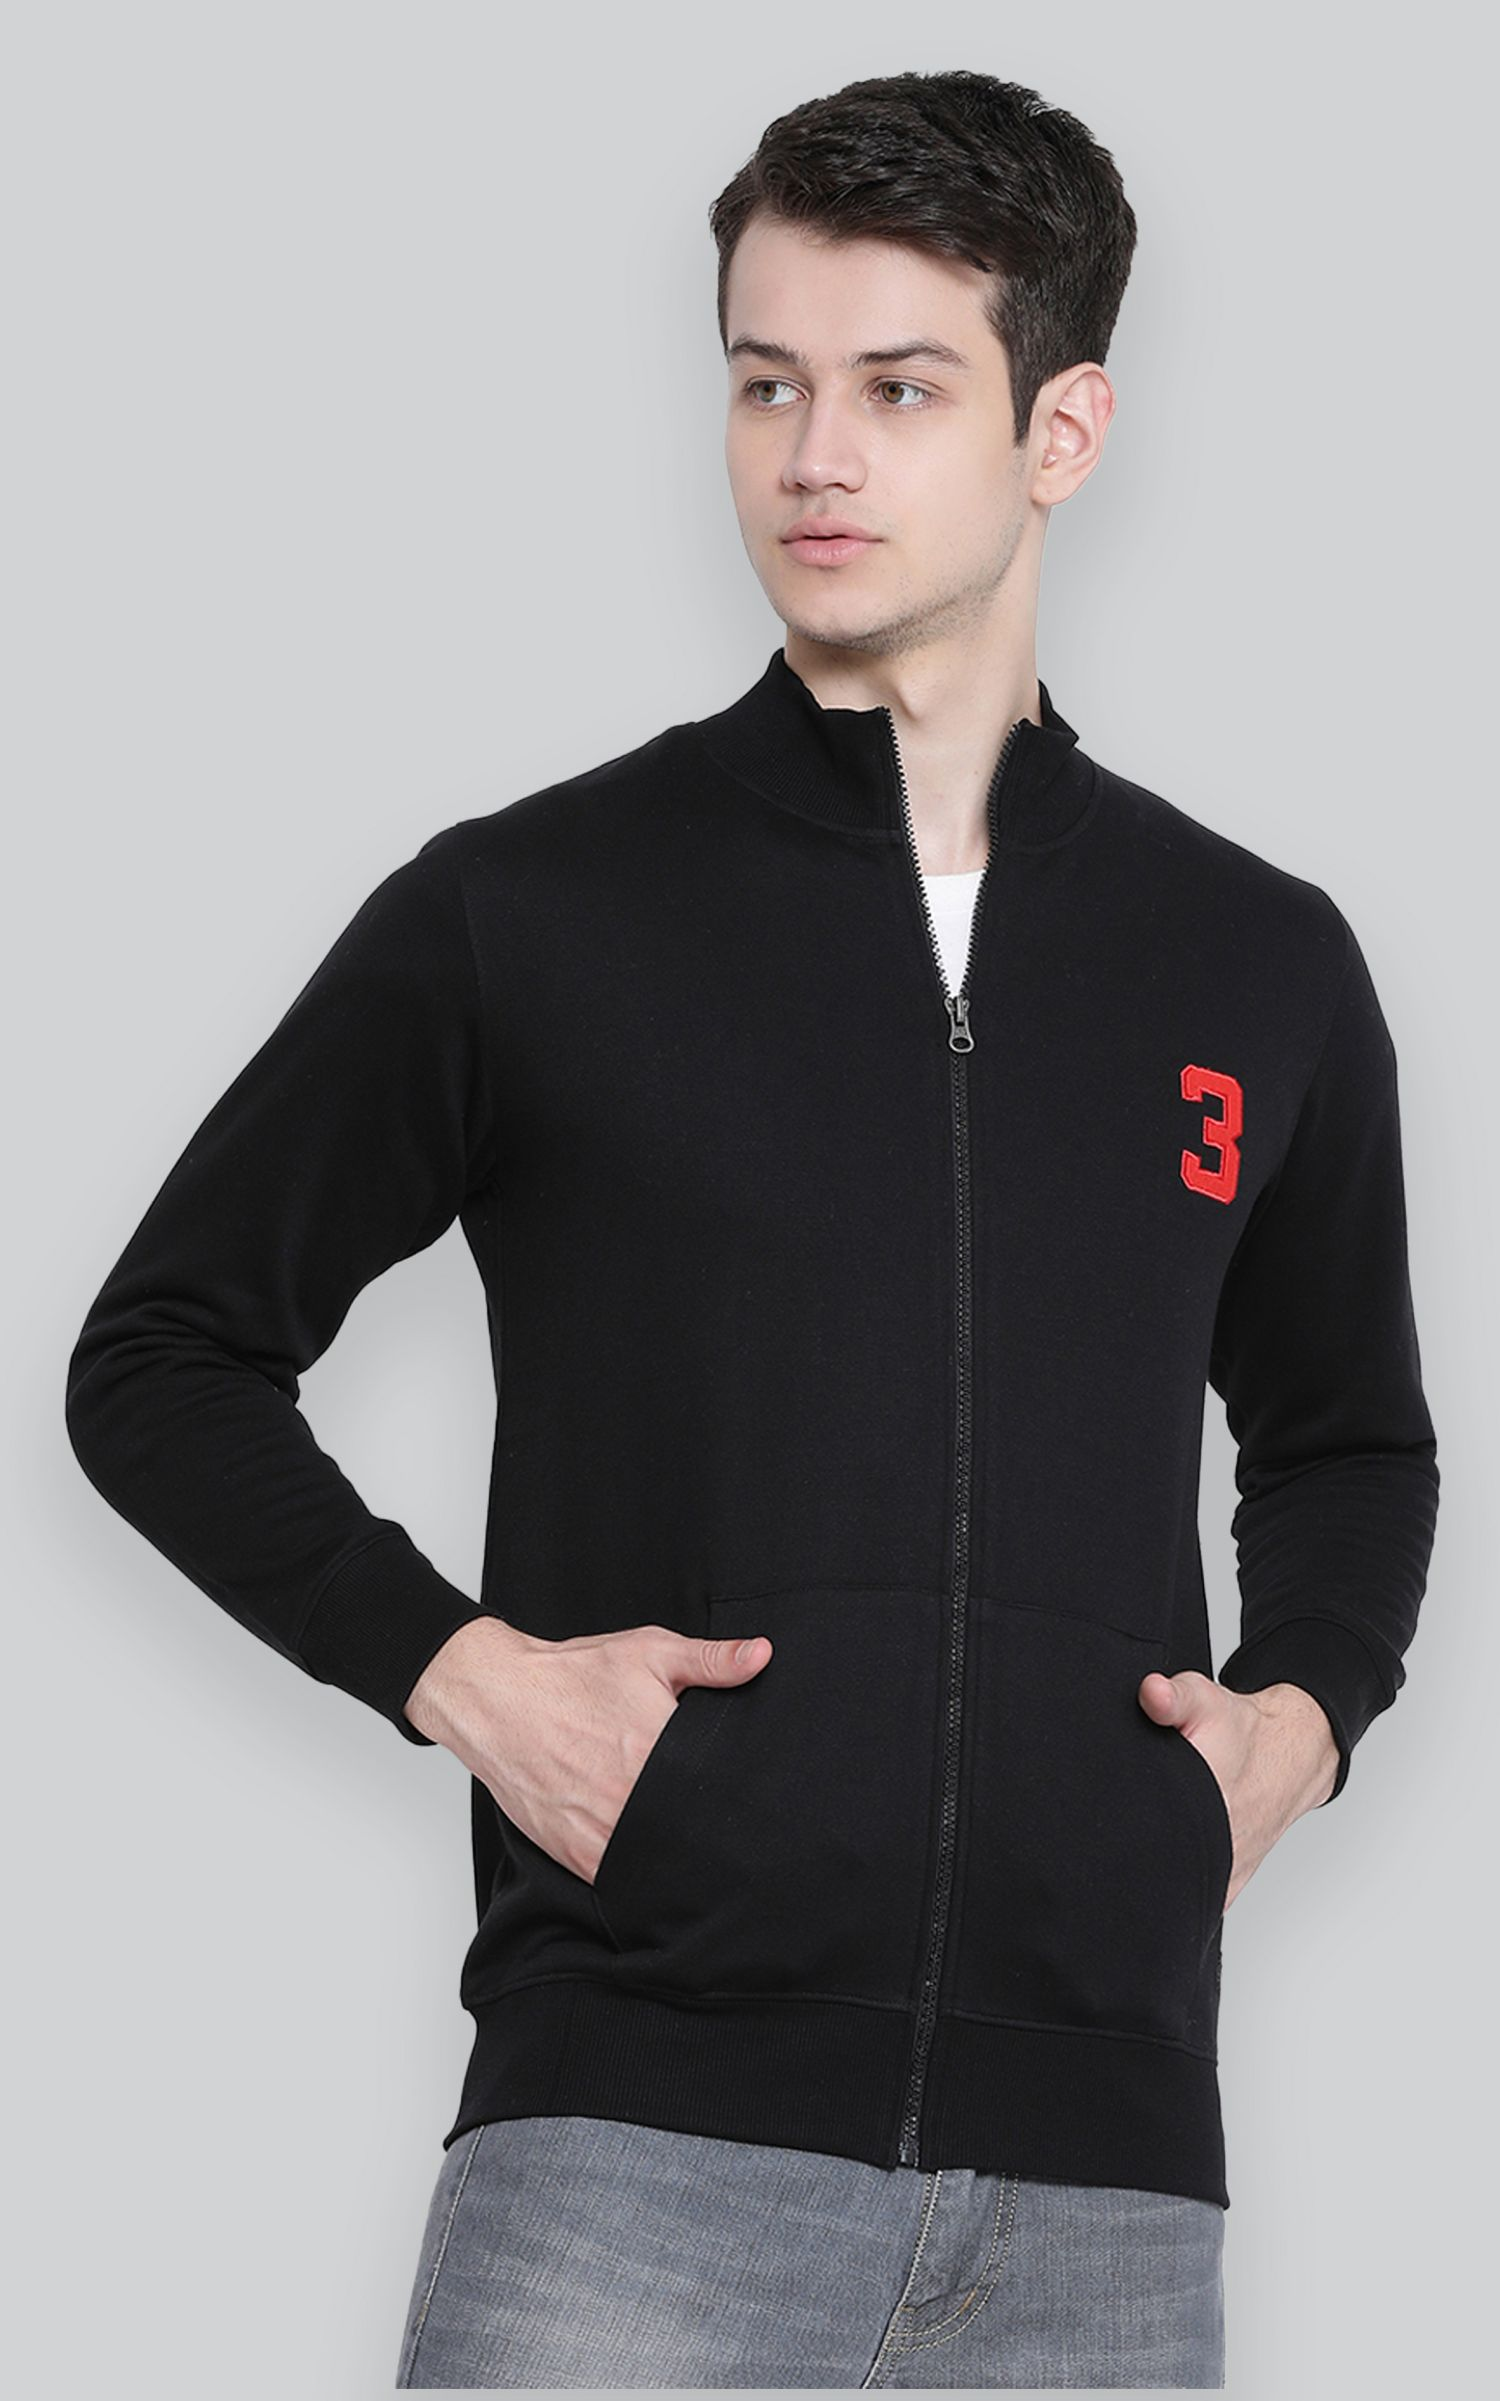 Hi-neck Jackets